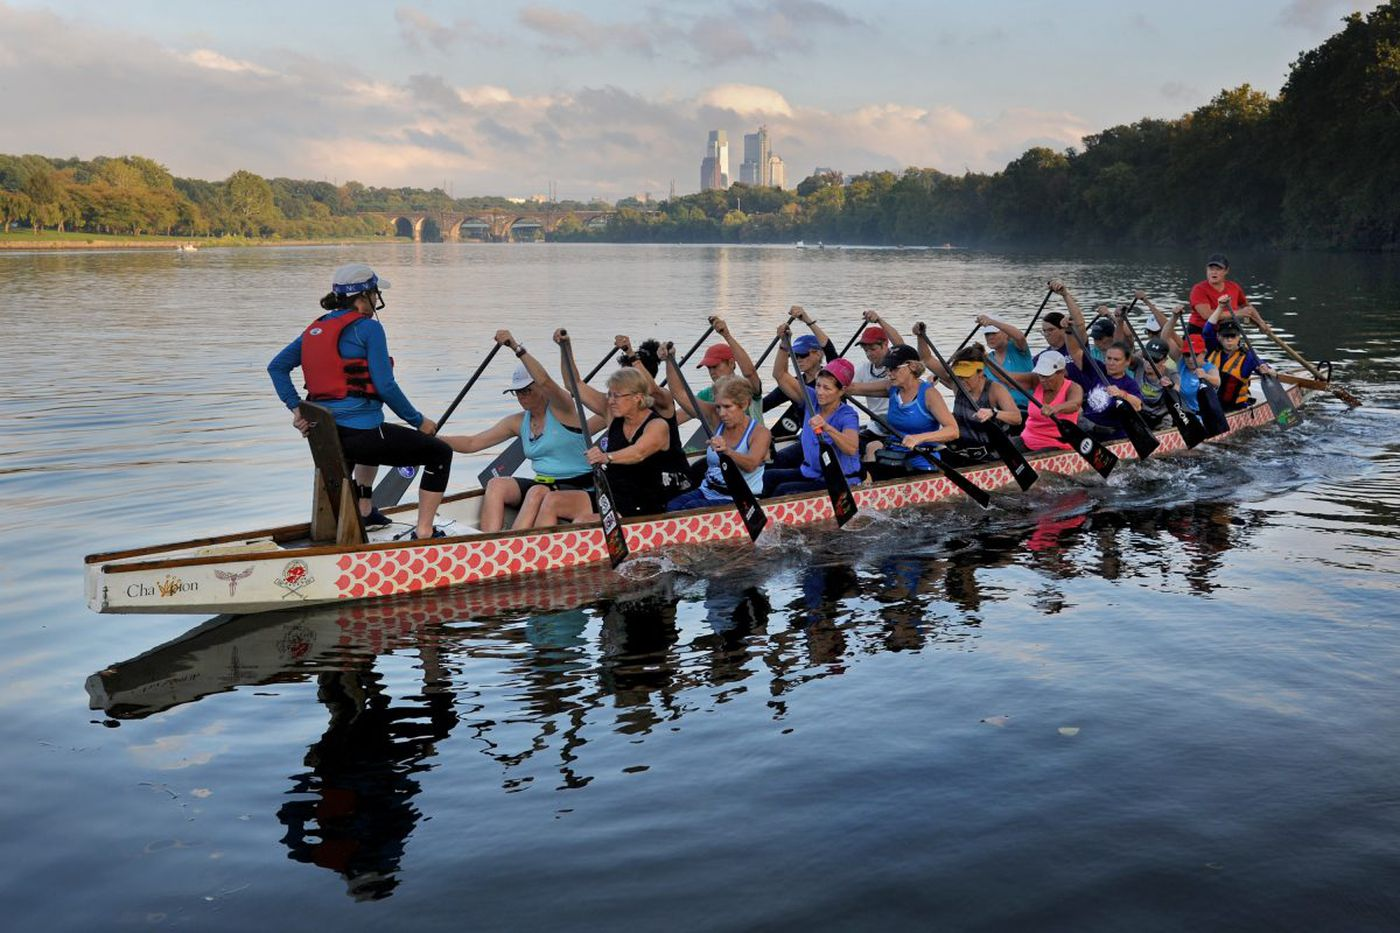 If it seems every American is doing dragon boating, you may be right. But it all started in Philadelphia